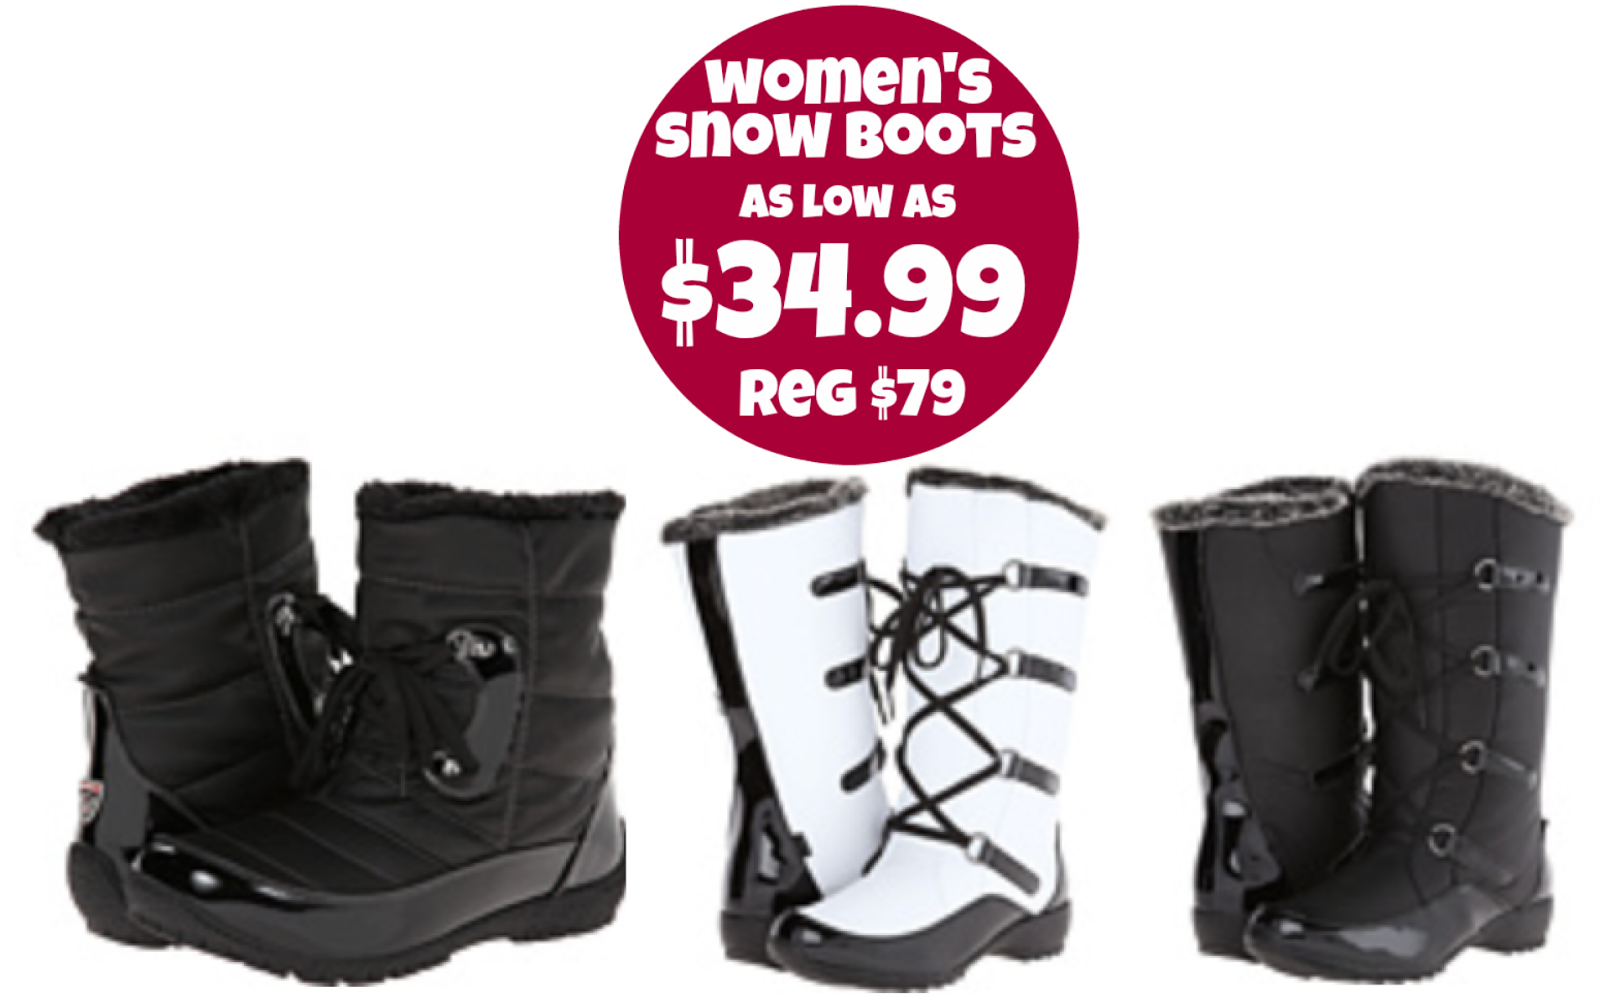 http://www.thebinderladies.com/2015/01/6pm-womens-snow-winter-boots-as-low-as.html#.VLPhJYfduyM